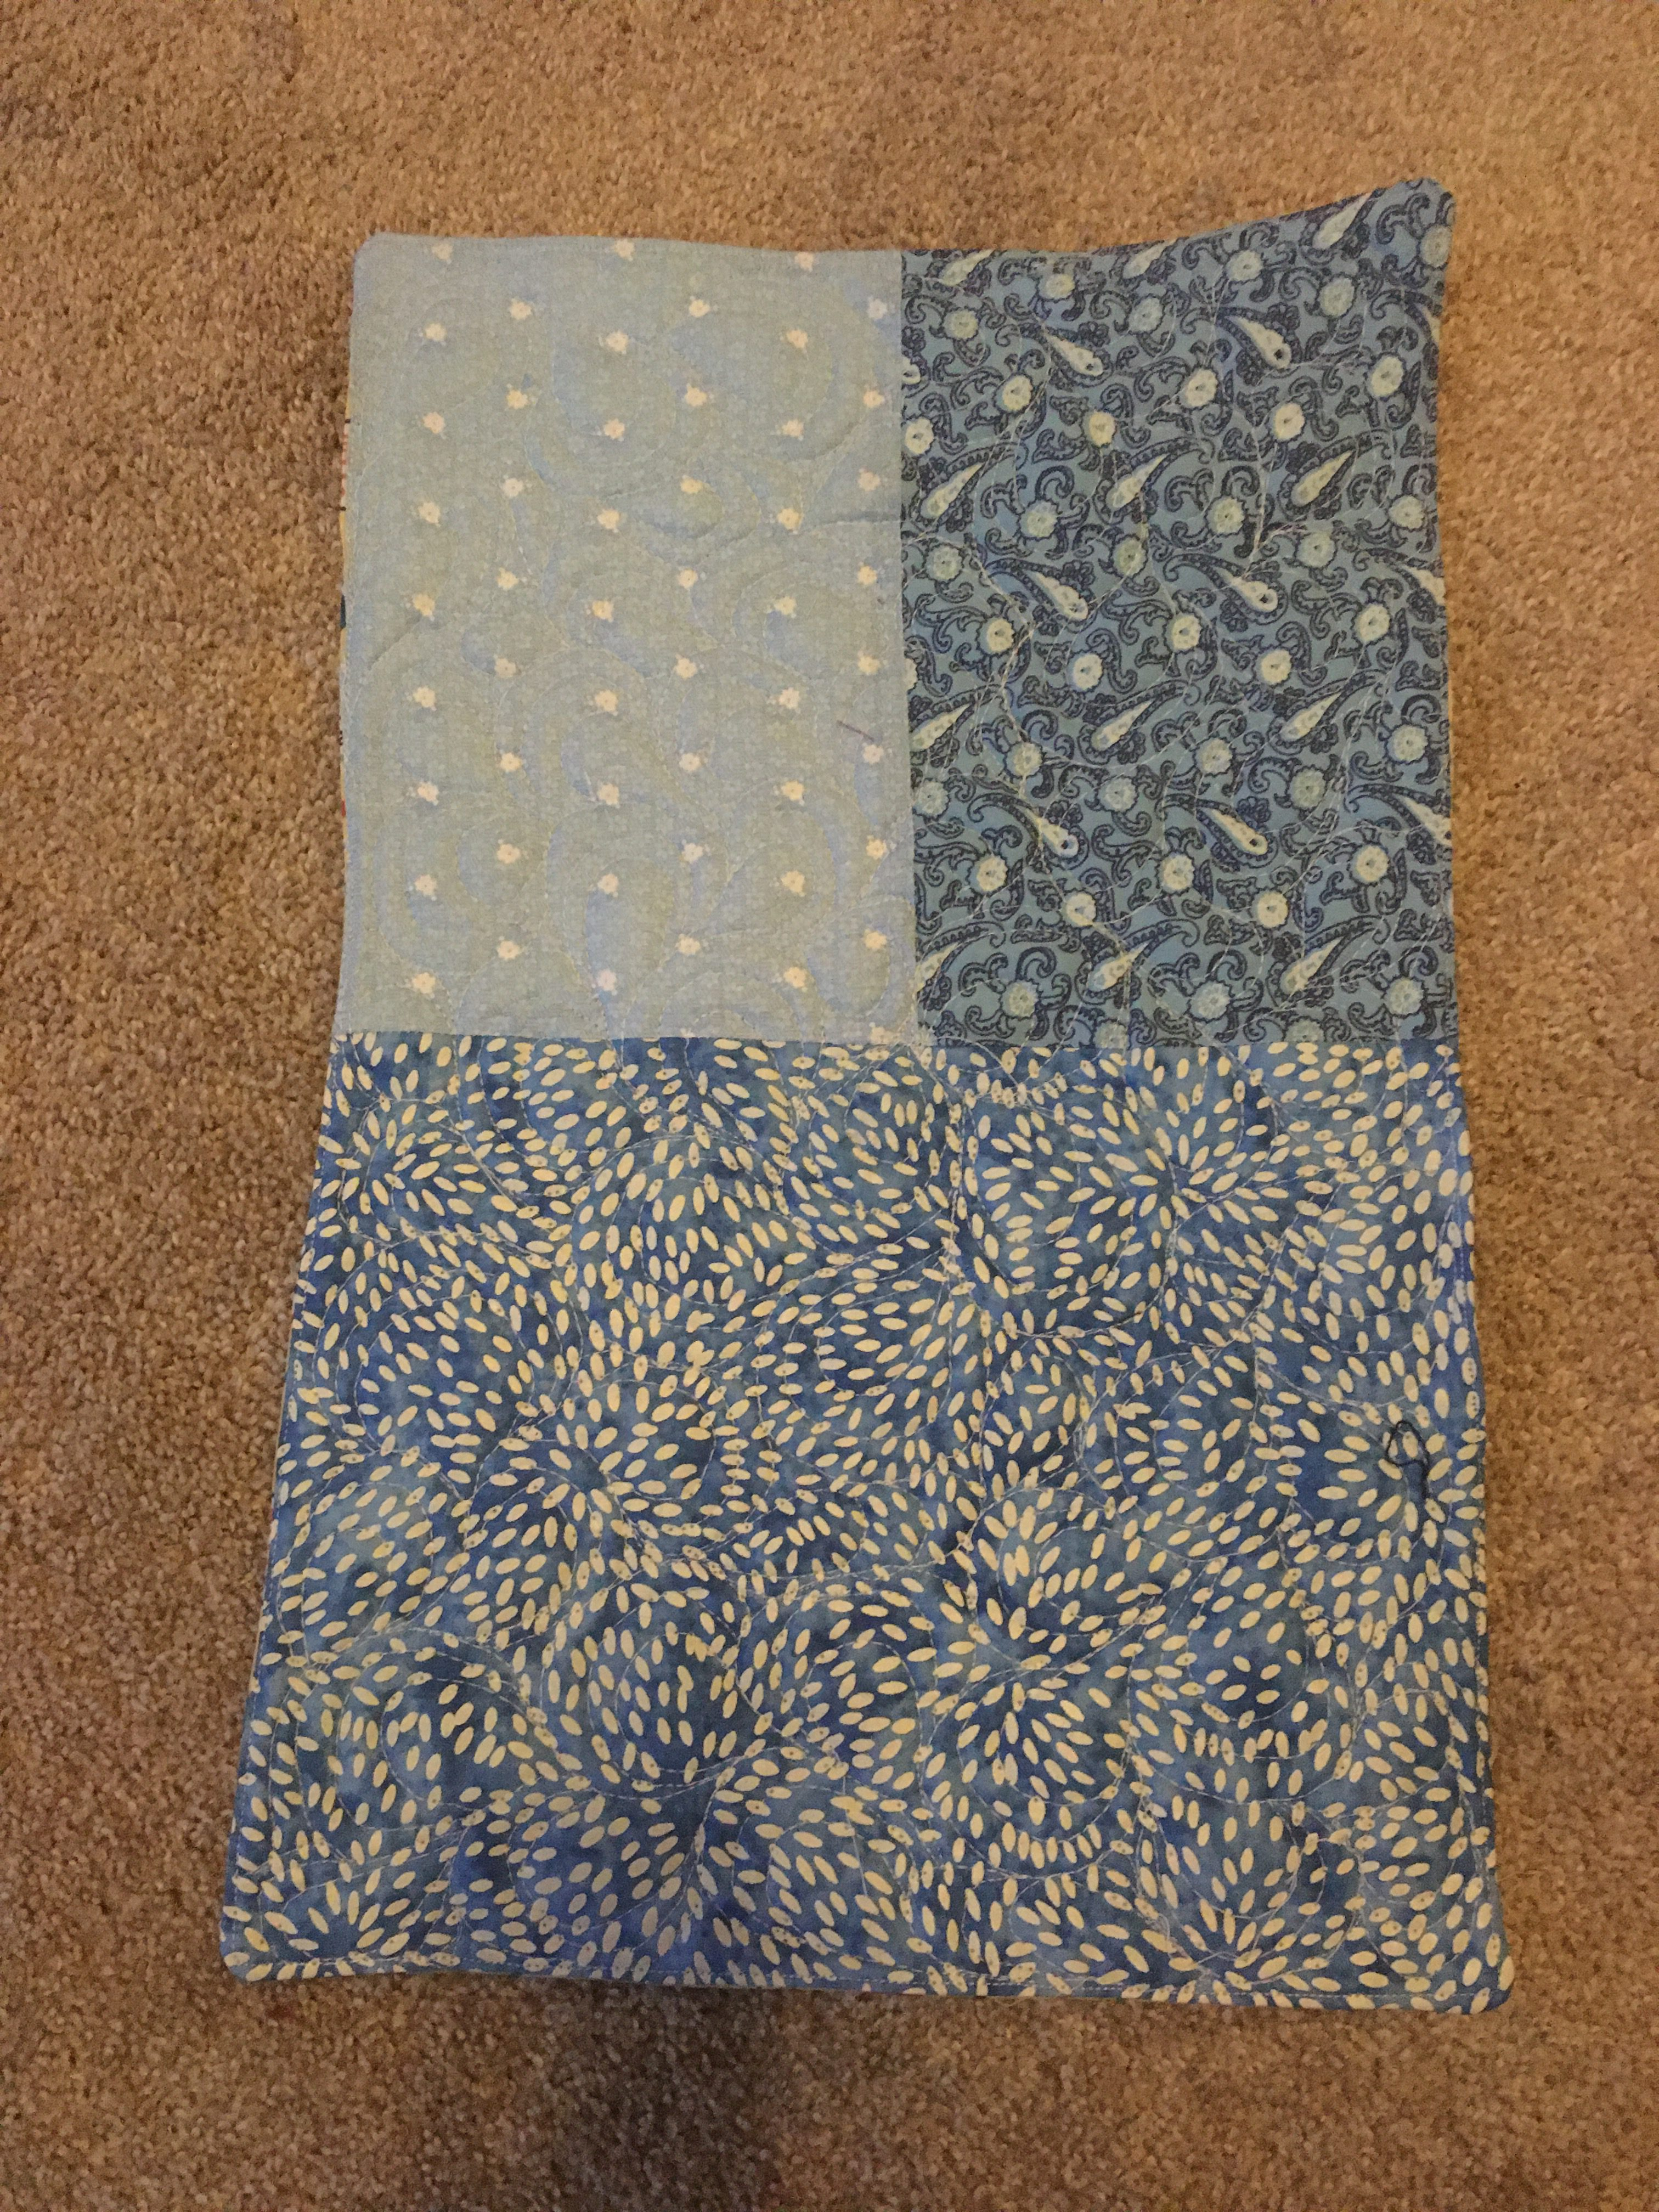 FMQ Practice – I mean…. Kennel Quilt!